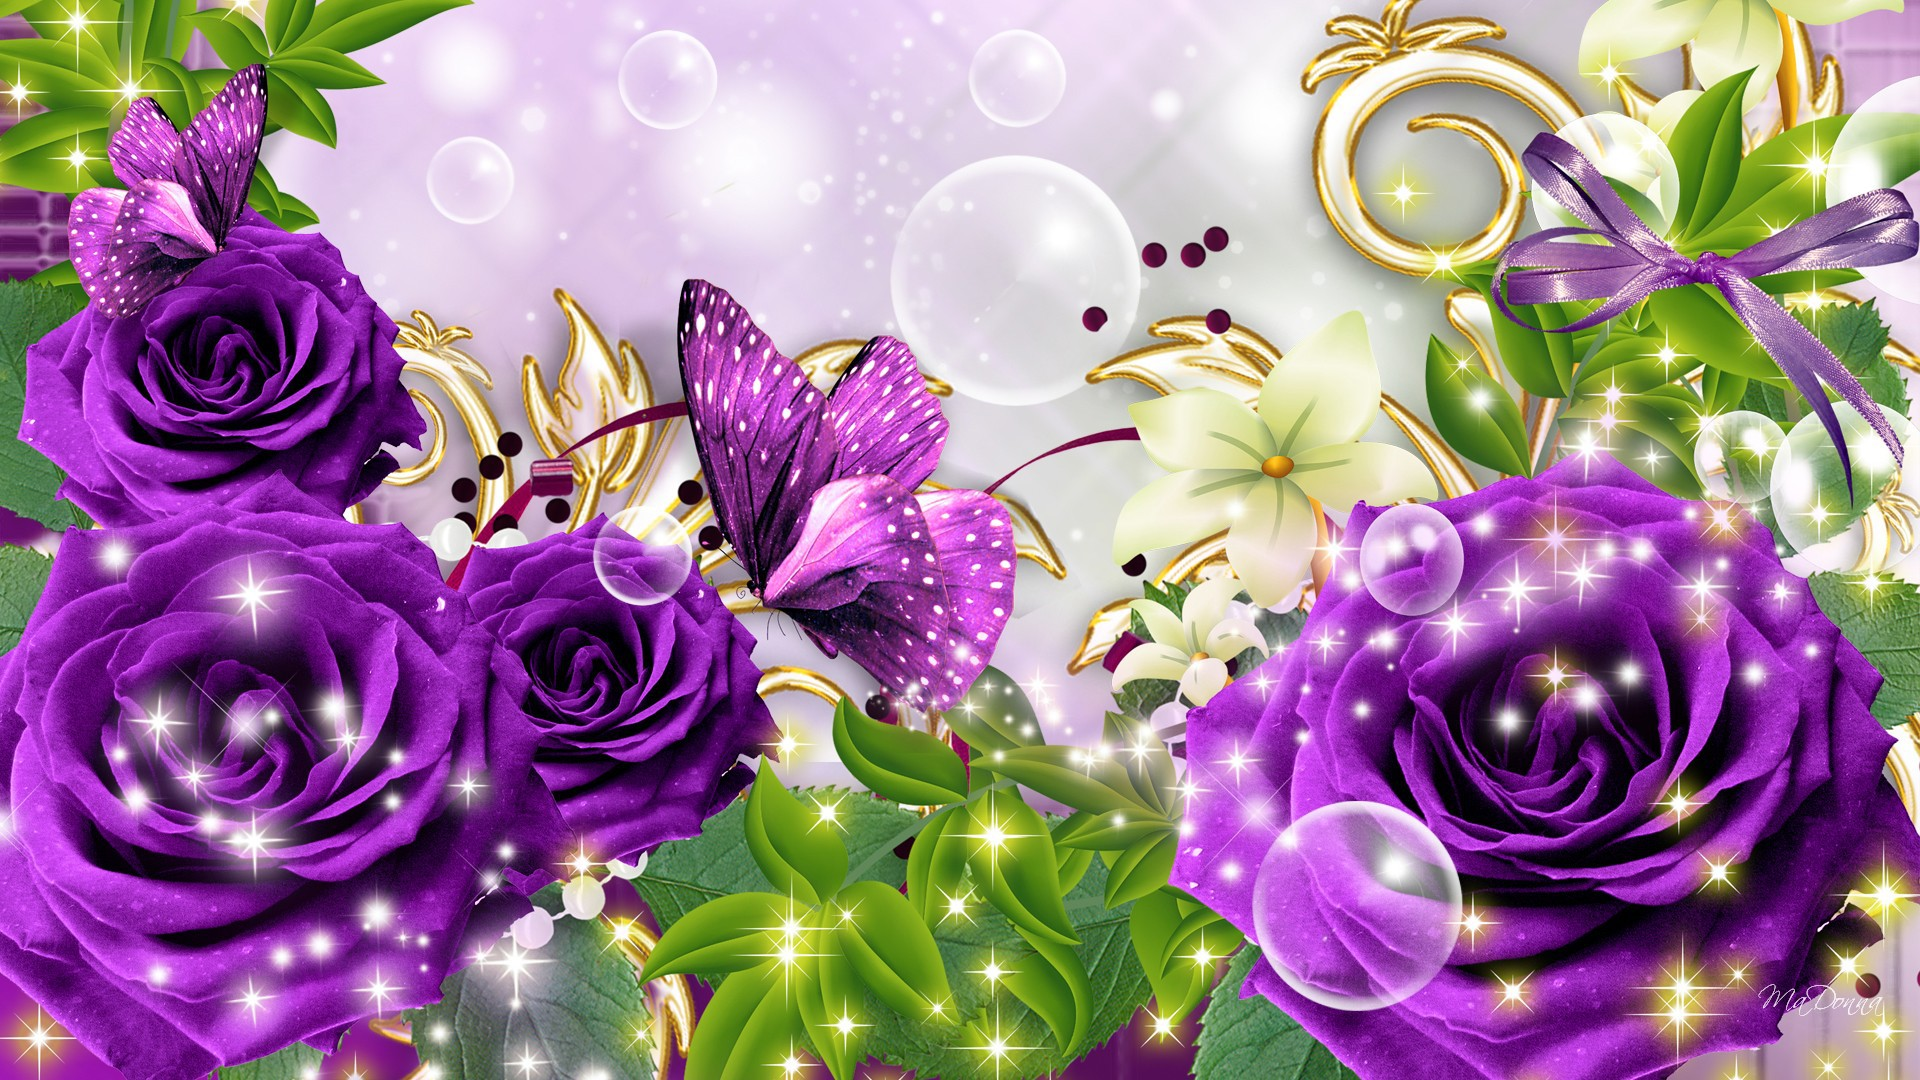 Purple Rose Wallpaper Desktop Wide